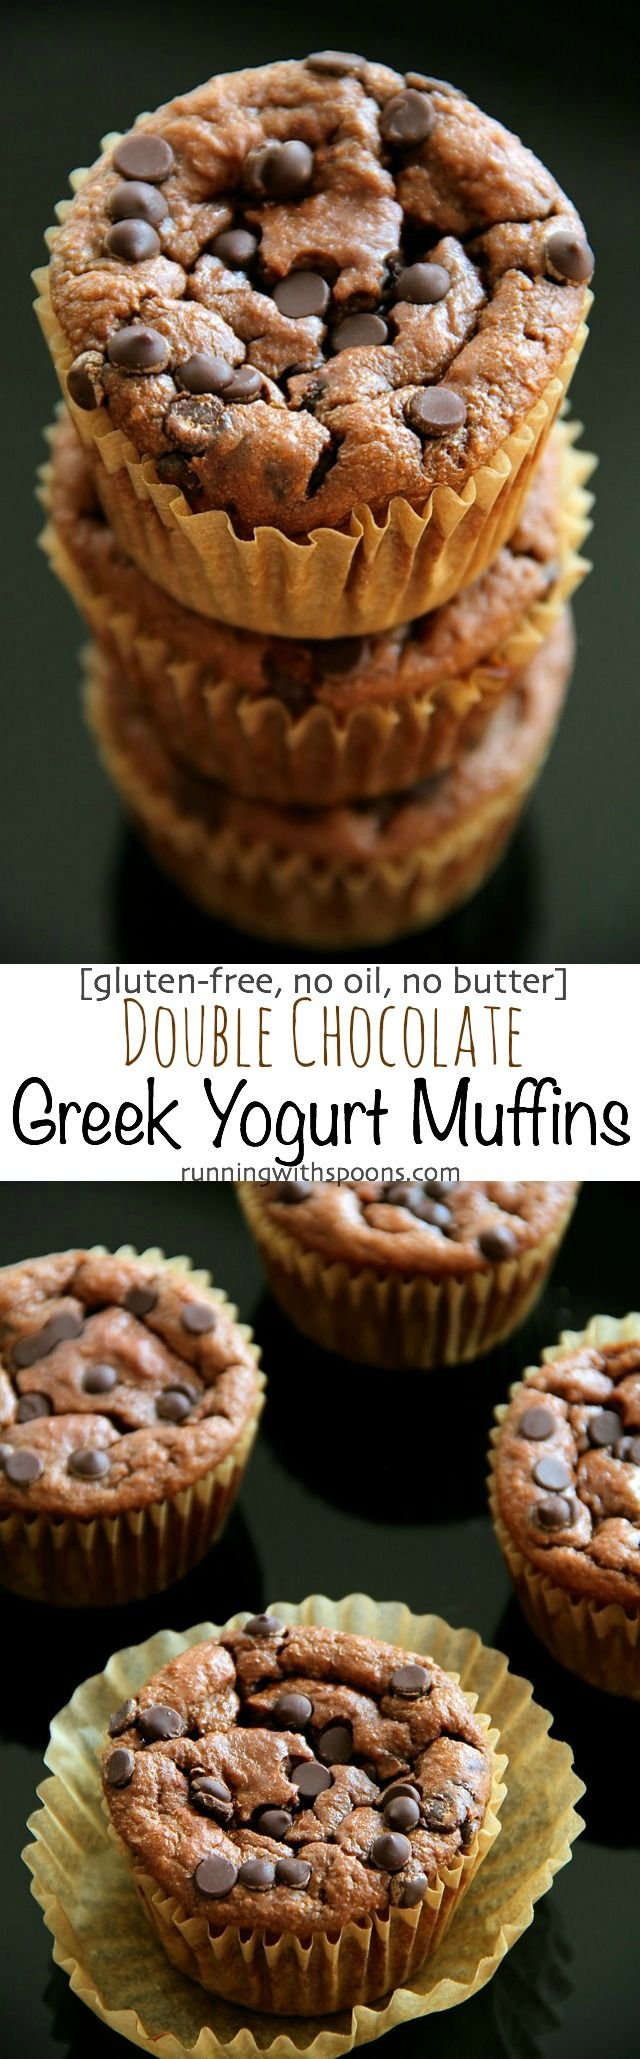 . double chocolate greek yogurt muffins .